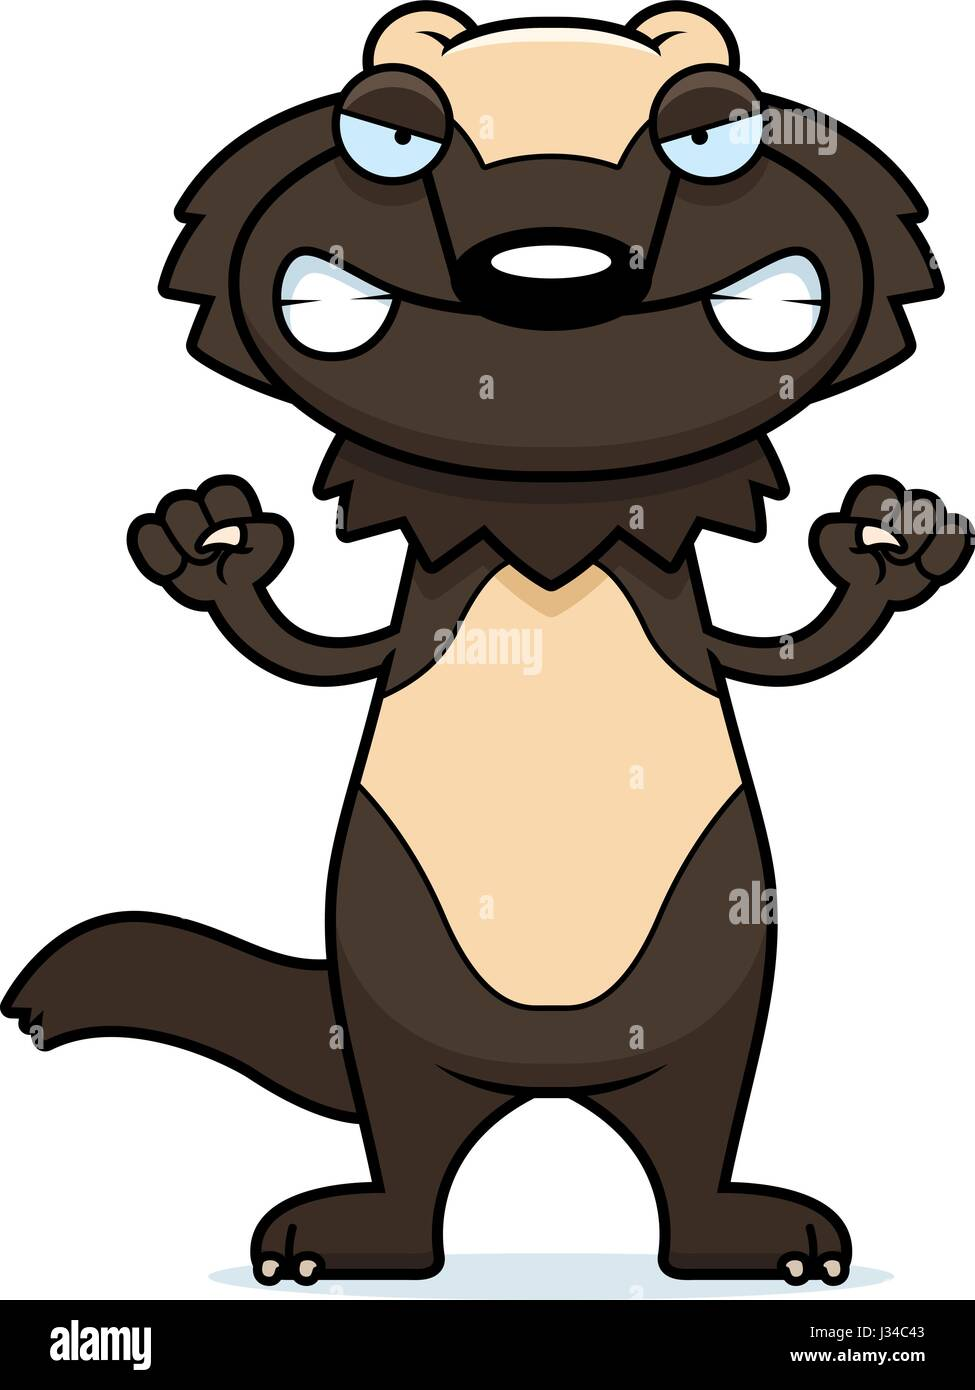 A cartoon illustration of a wolverine looking angry. - Stock Image